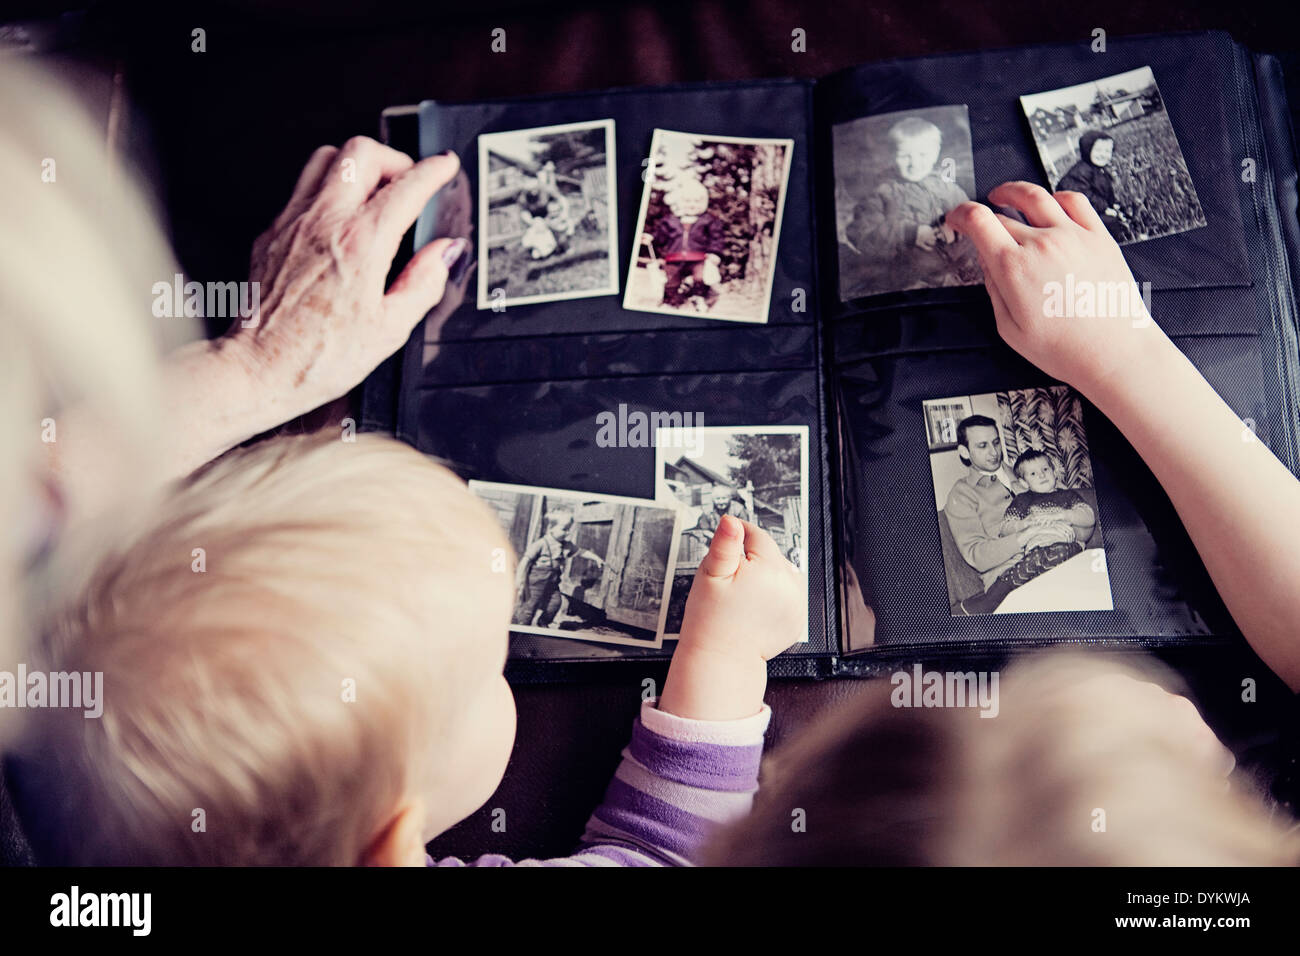 Generations of one family looking through an old family photo album together. - Stock Image